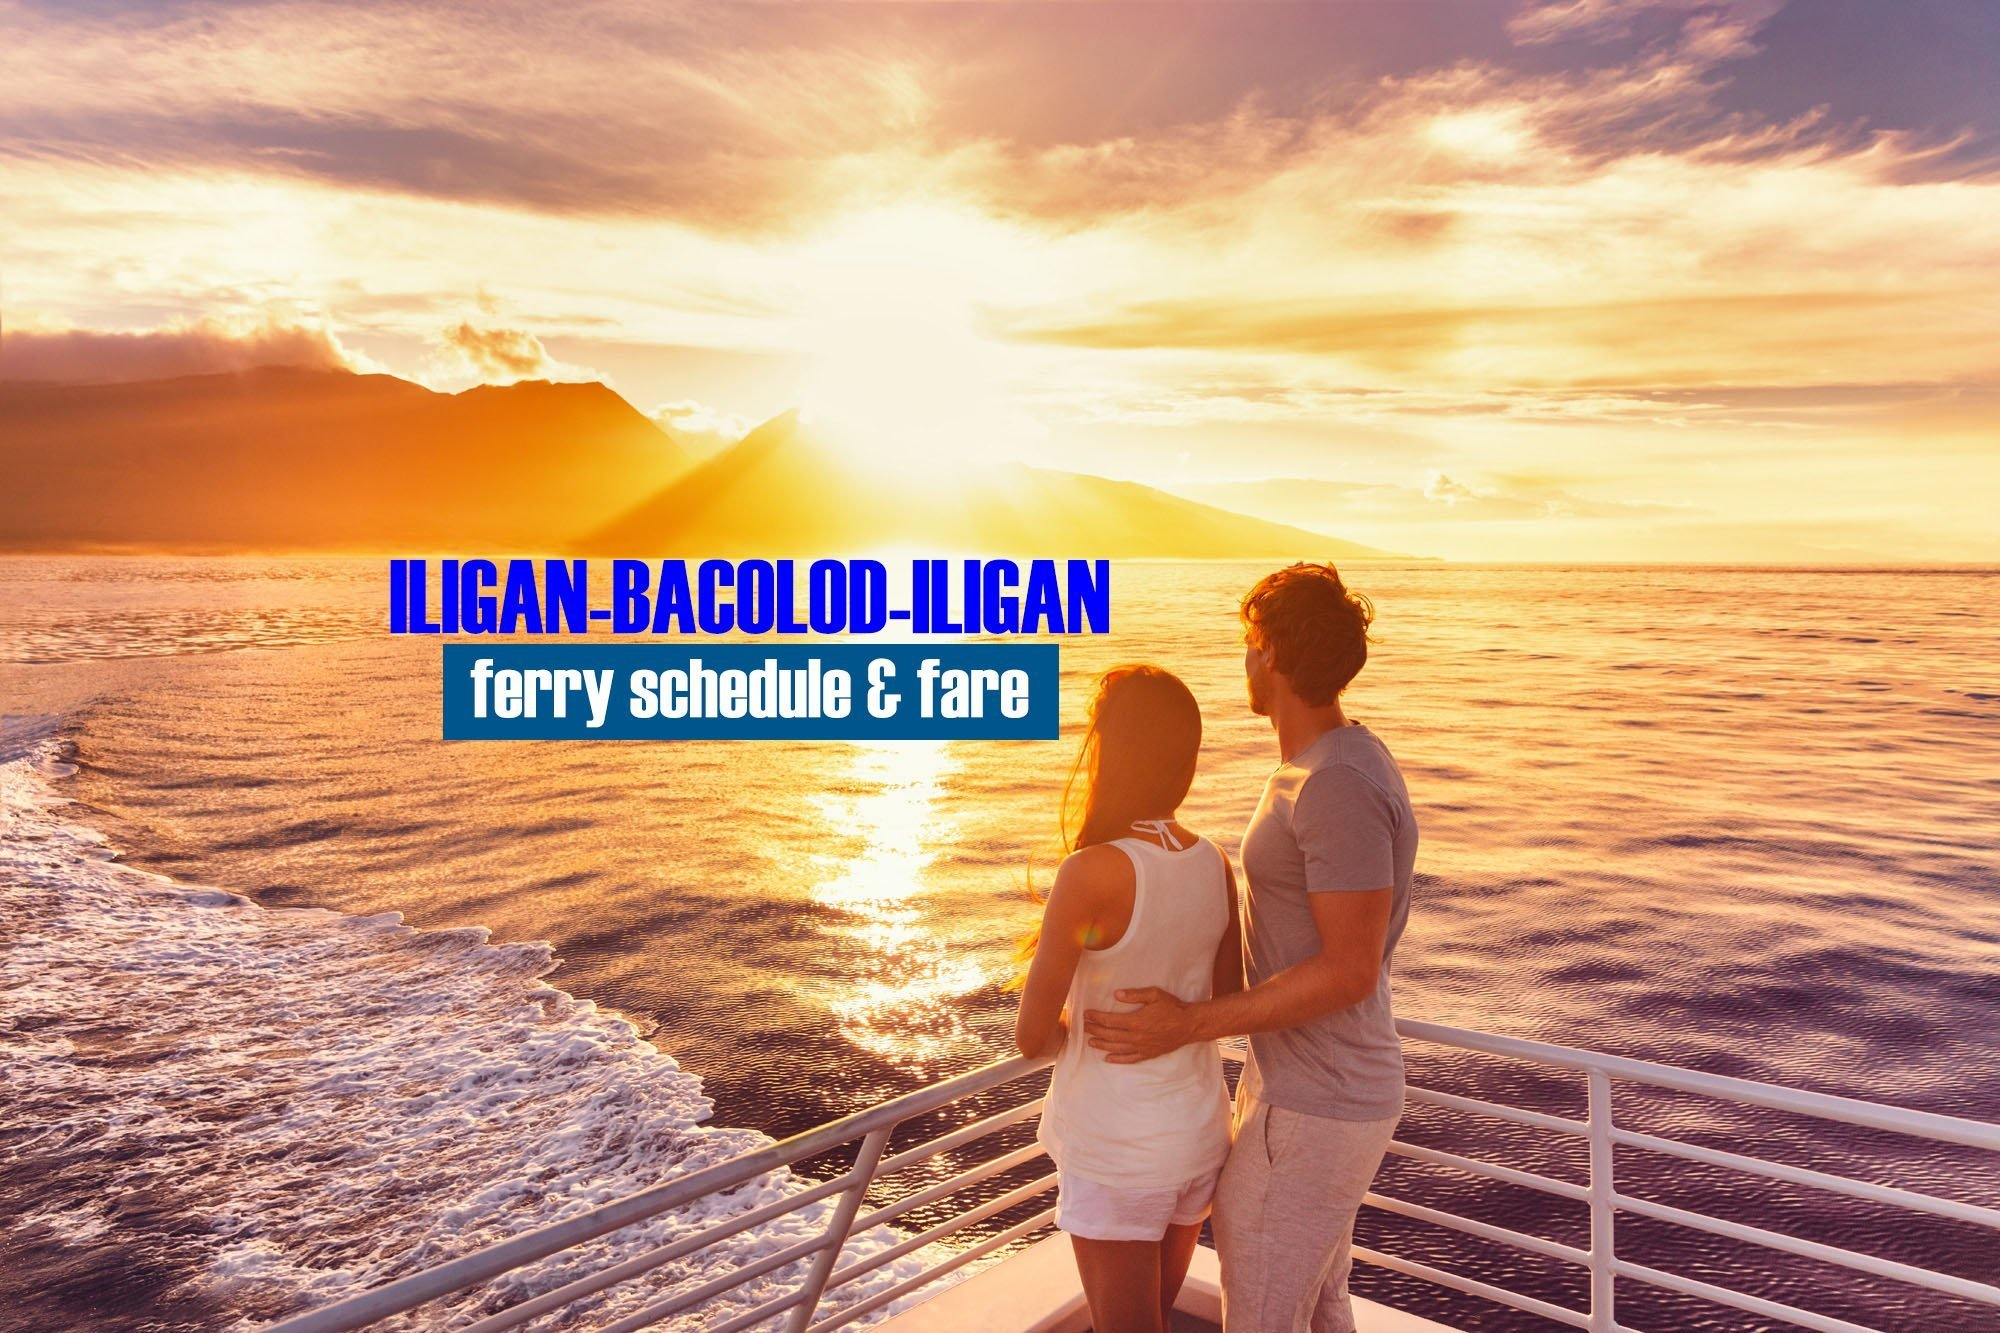 Iligan to Bacolod: 2019 Boat Schedule and Fare